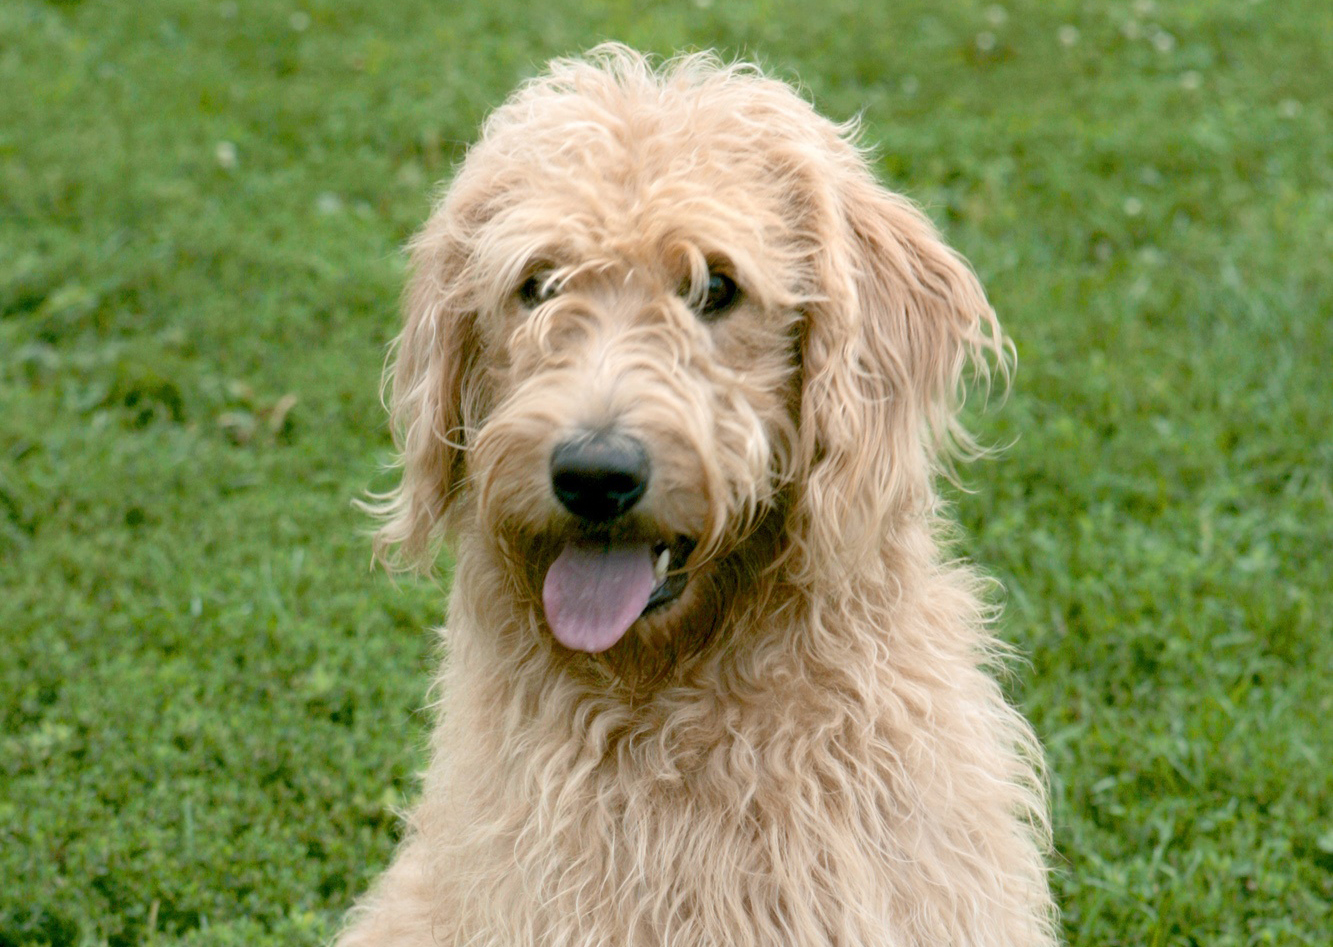 The Labradoodle —a cross between a poodle and Labrador retriever —was first bred not for its cute face or scruffy hair, but to solve a service dog problem.